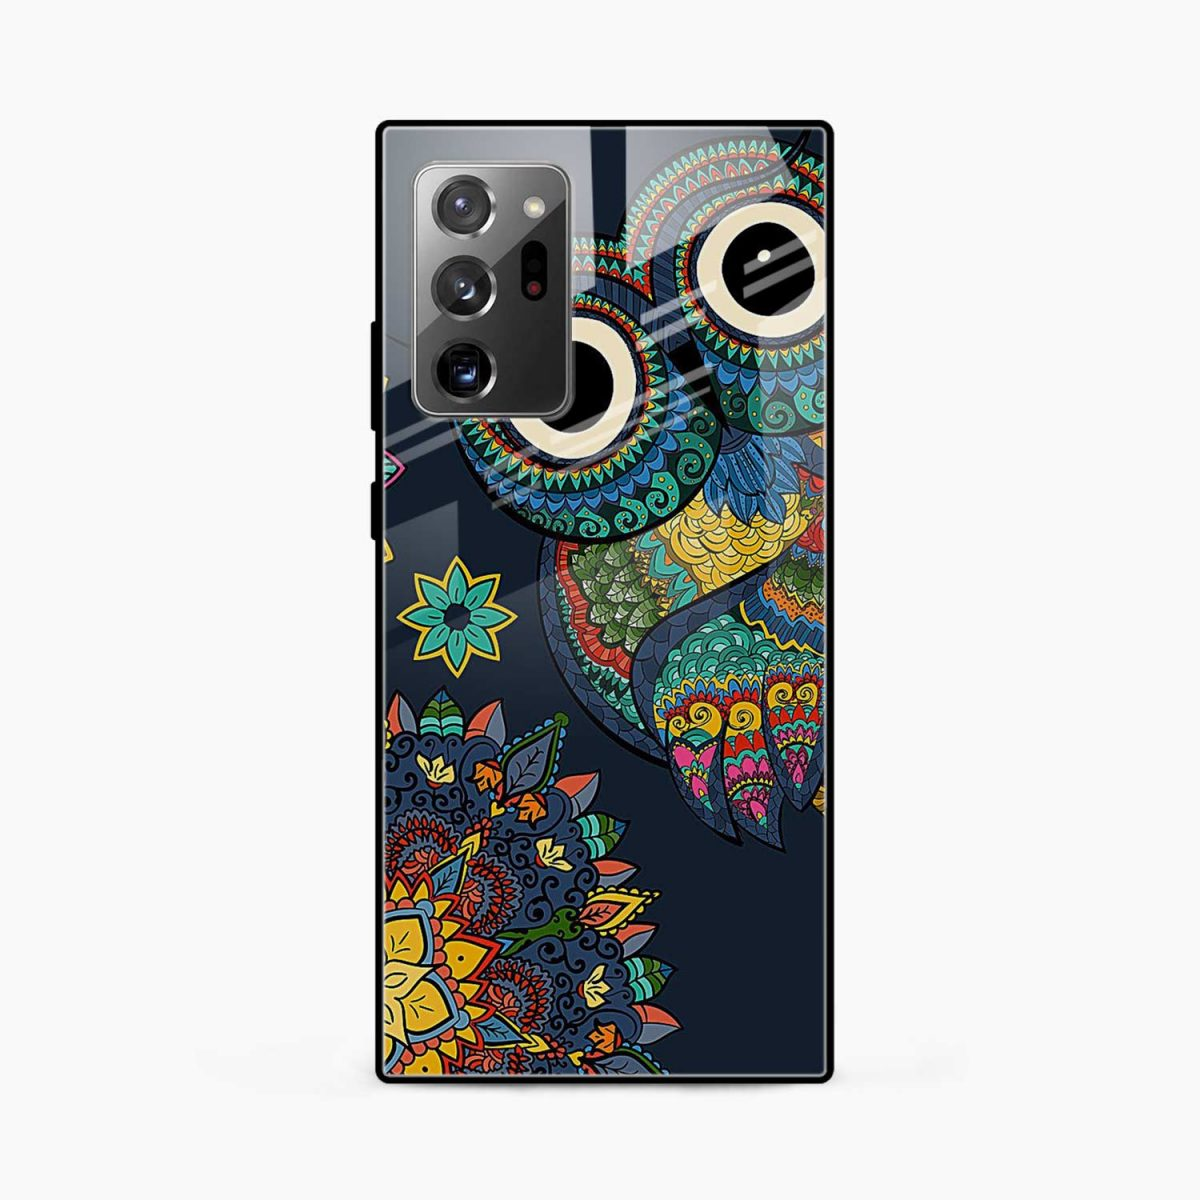 owl eyes front view samsung galaxy note20 ultra back cover